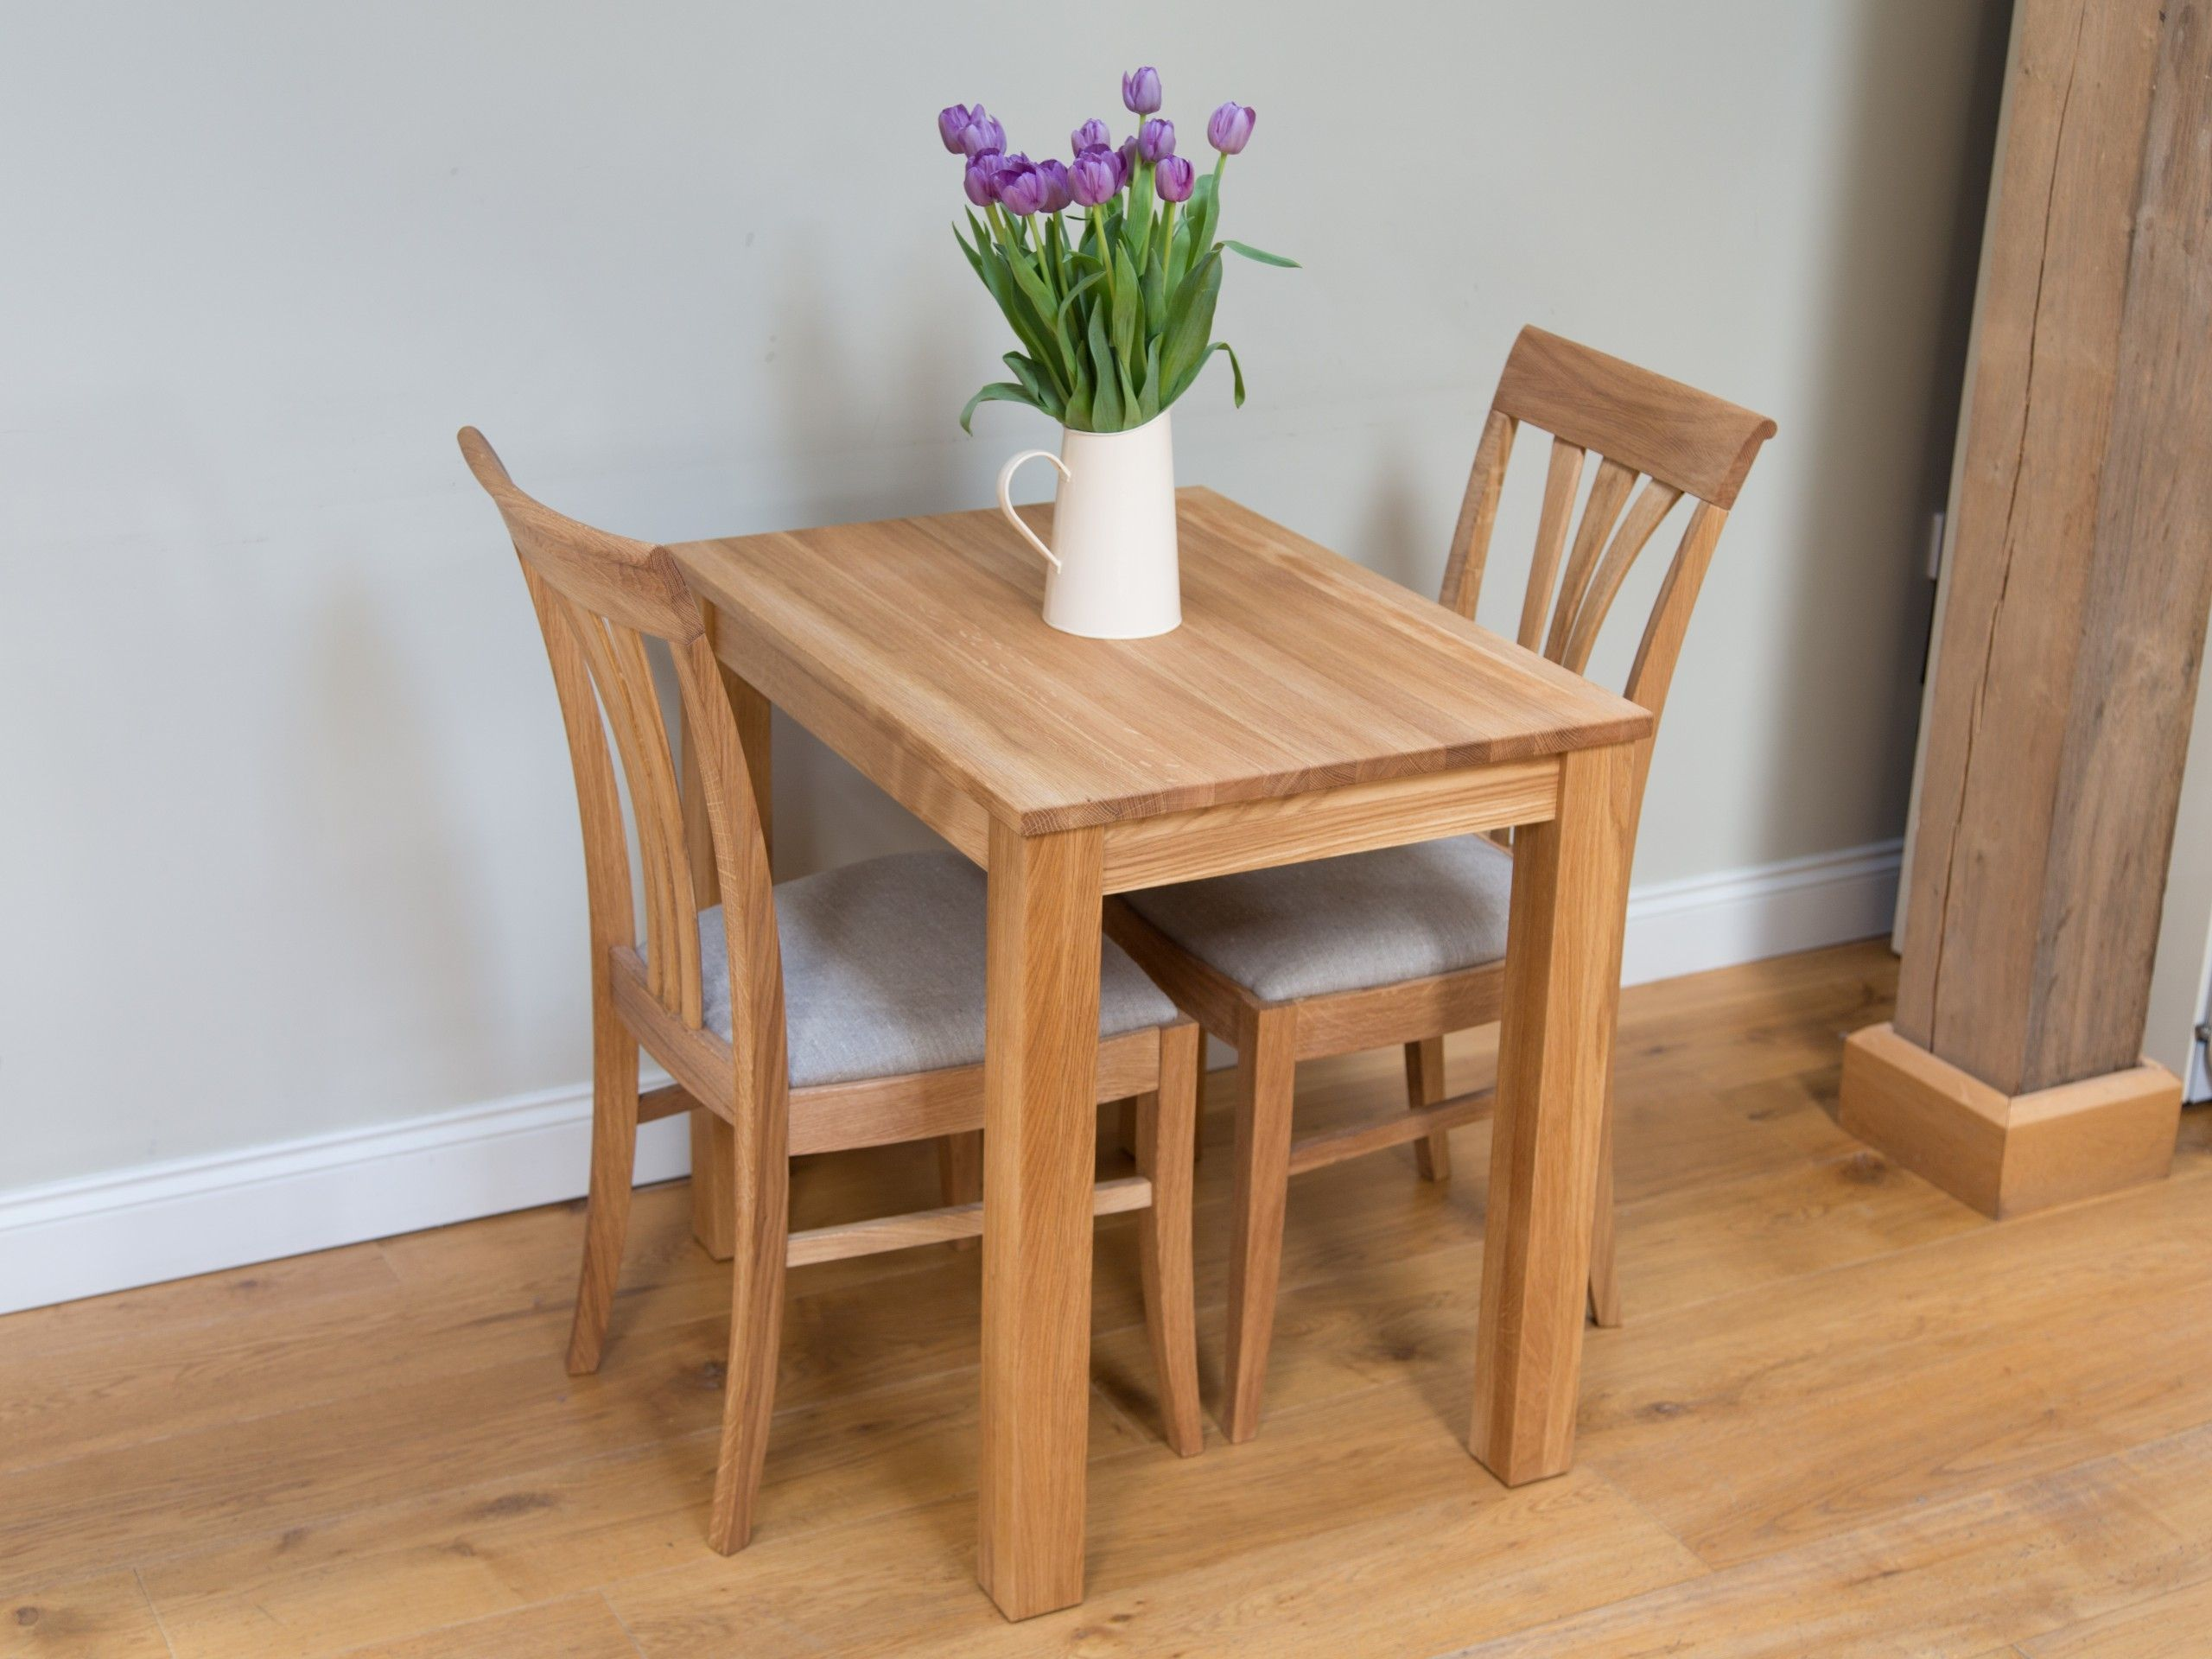 Two Seater Kitchen Table And Chairs Square Kitchen Tables Solid Oak Dining Table Small Kitchen Tables